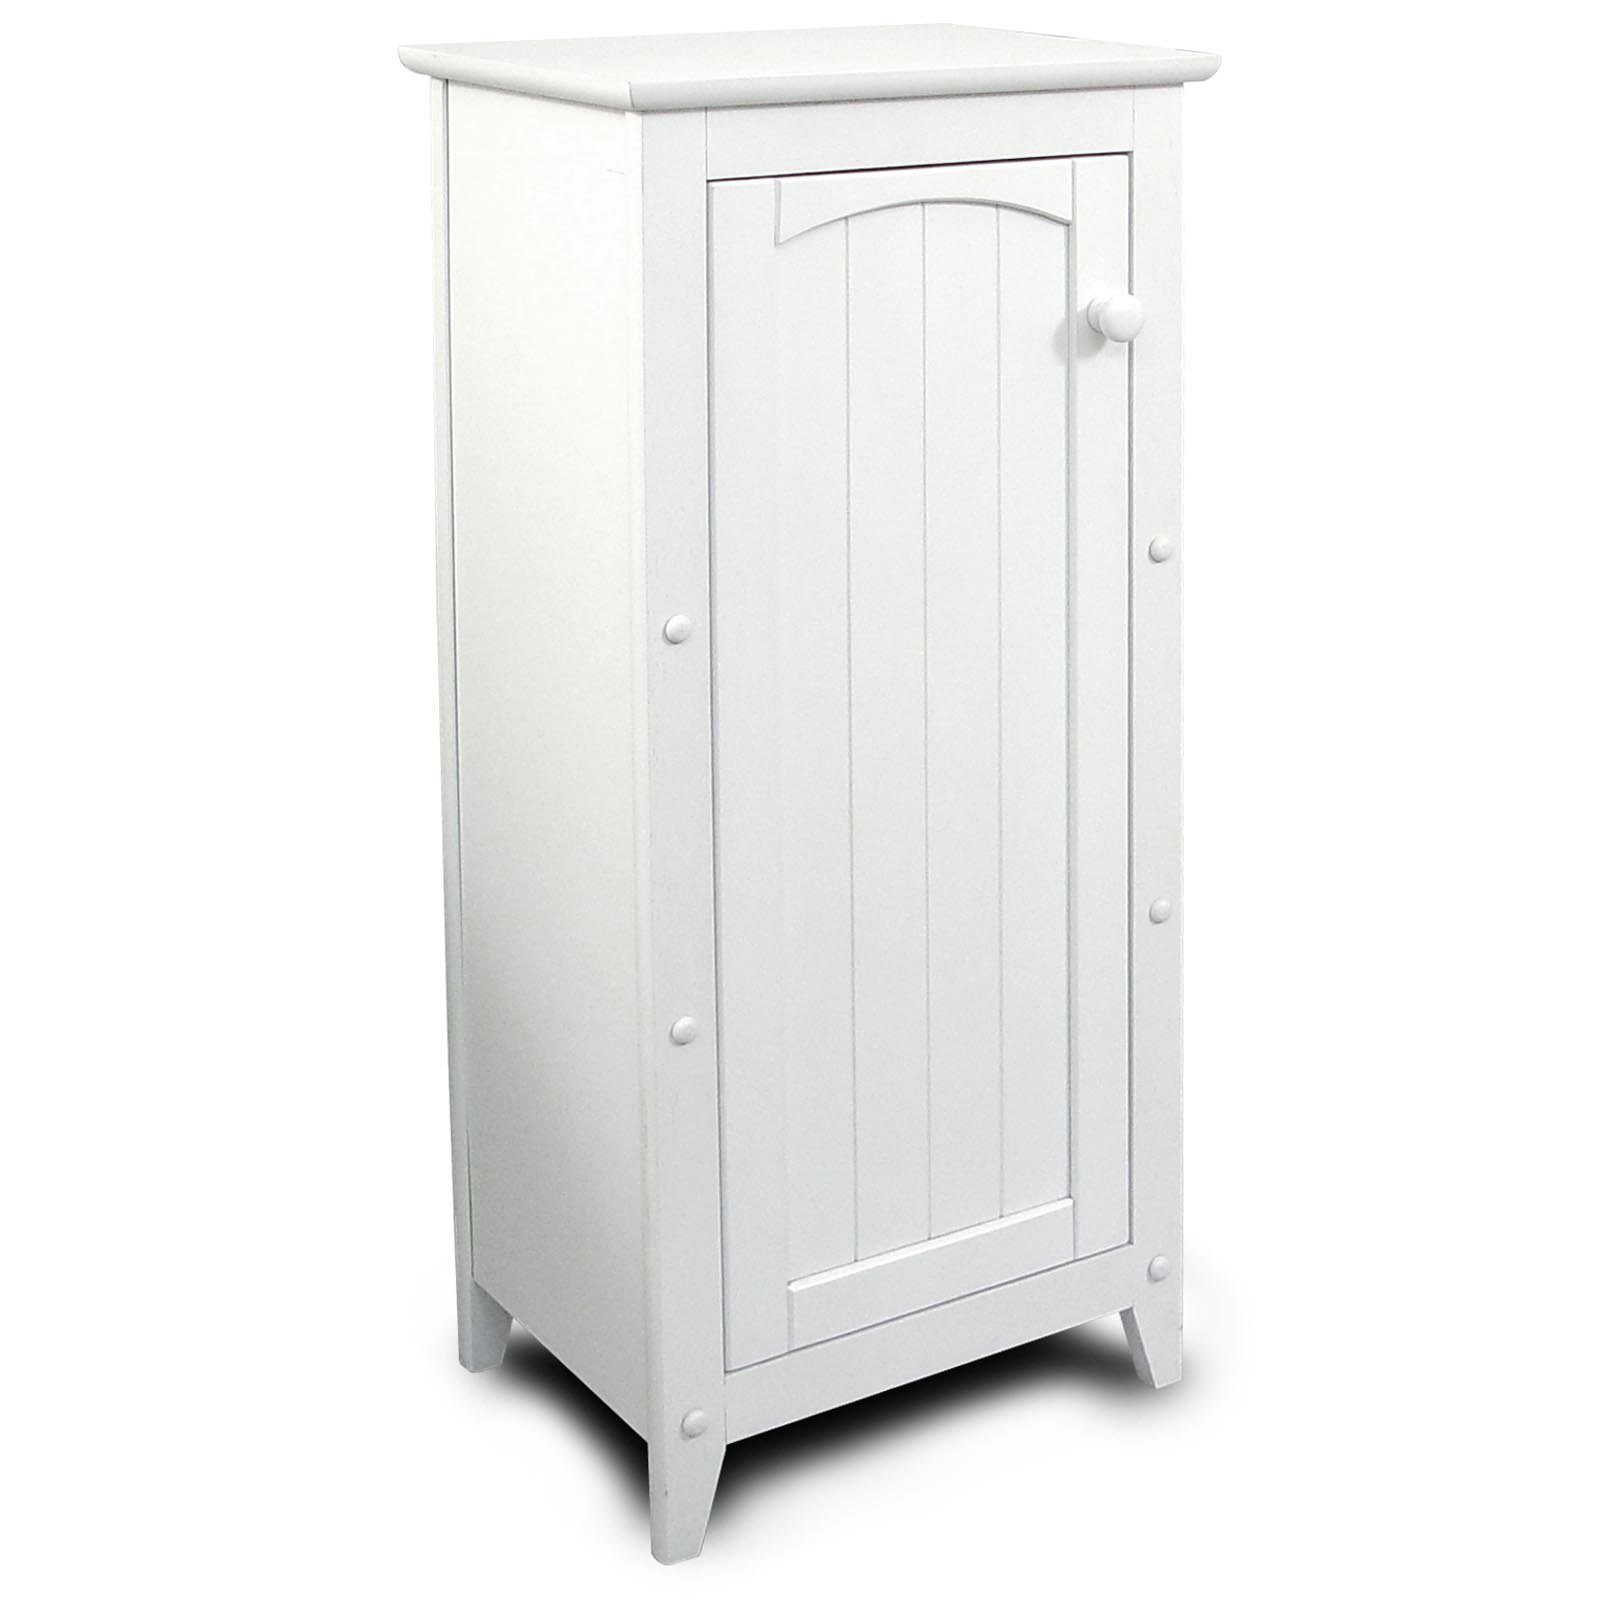 Single Kitchen Cabinet Catskill White Allpurpose Kitchen Storage Cabinet  Walmart